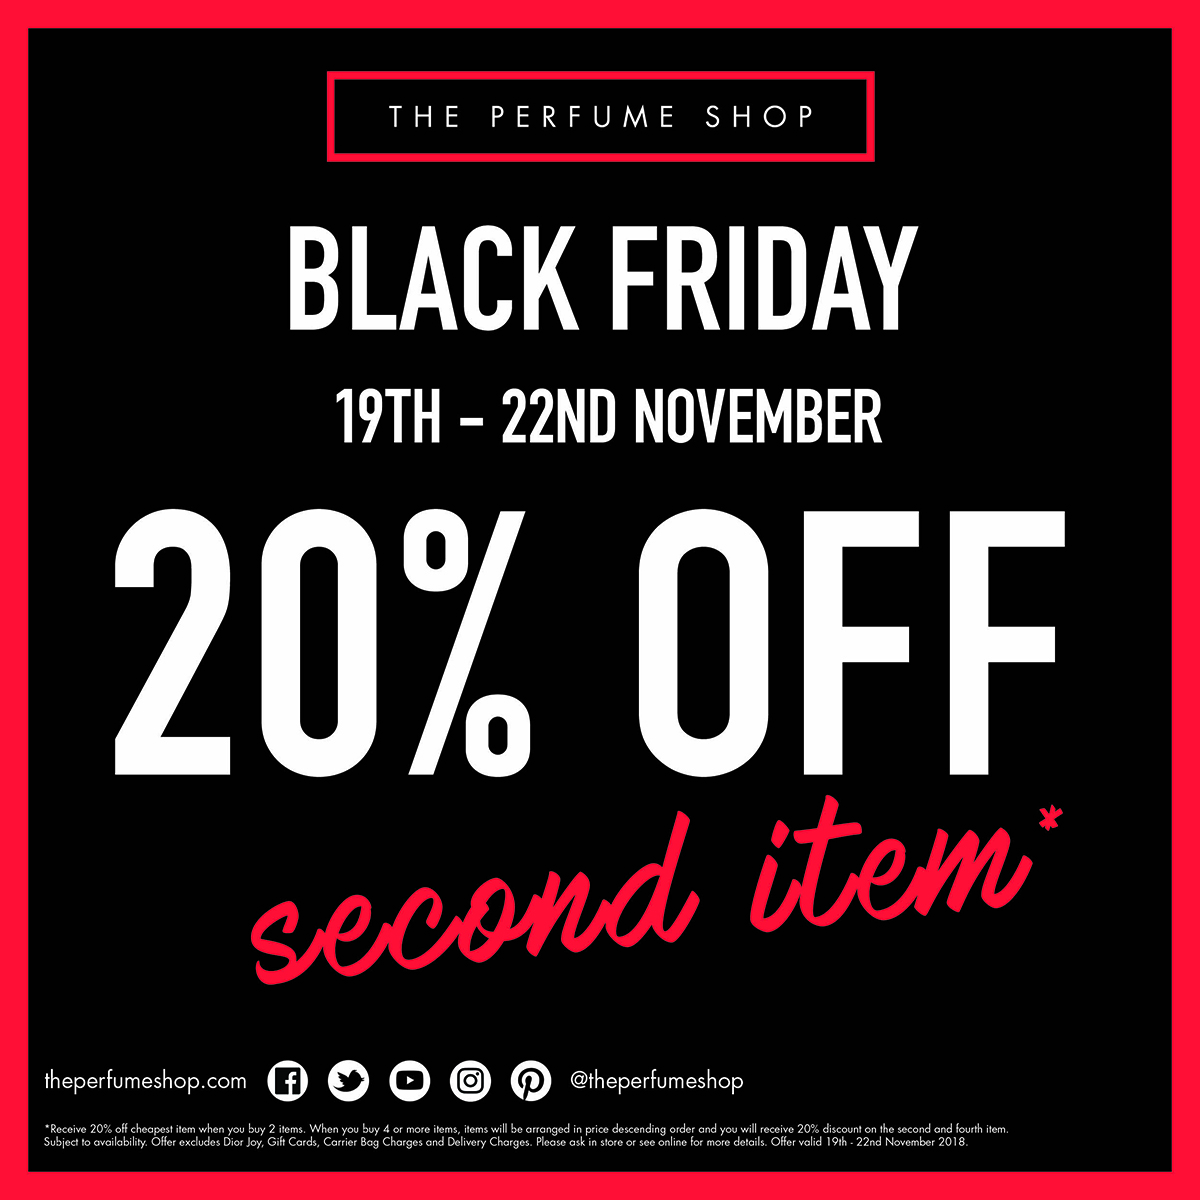 bb3a5429f See in store for The Perfume Shop s Black Friday Offers – Hurry this offer  ends Thursday 22nd November!